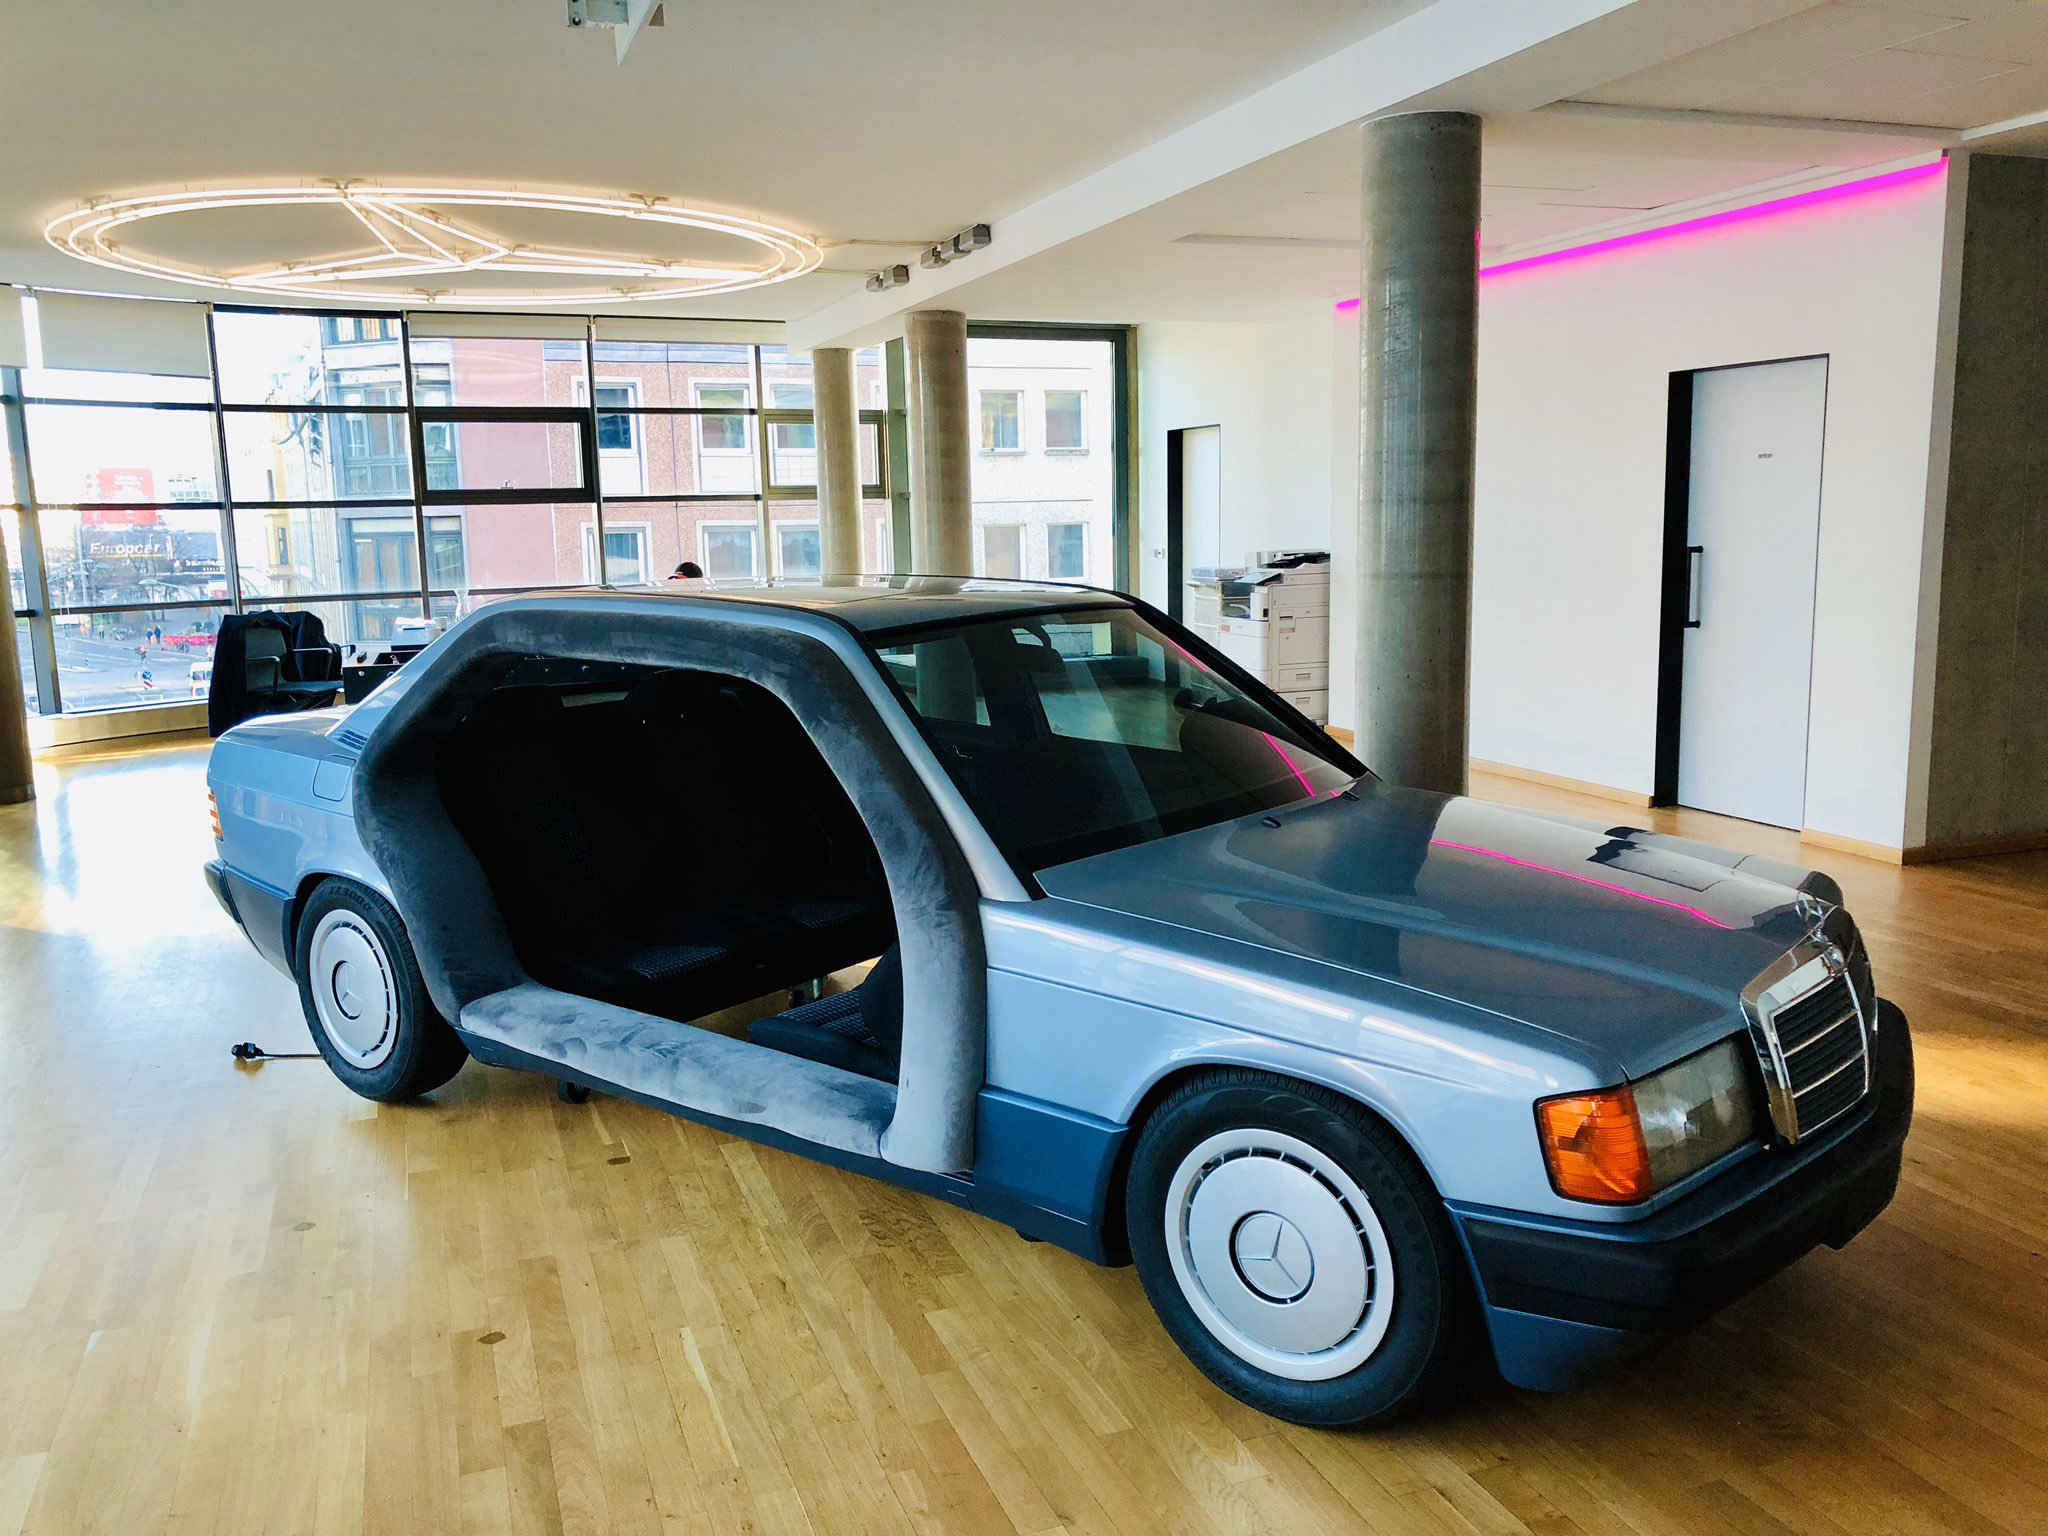 the-coolest-non-running-1991-mercedes-benz-190-doubles-as-office-space-139681_1